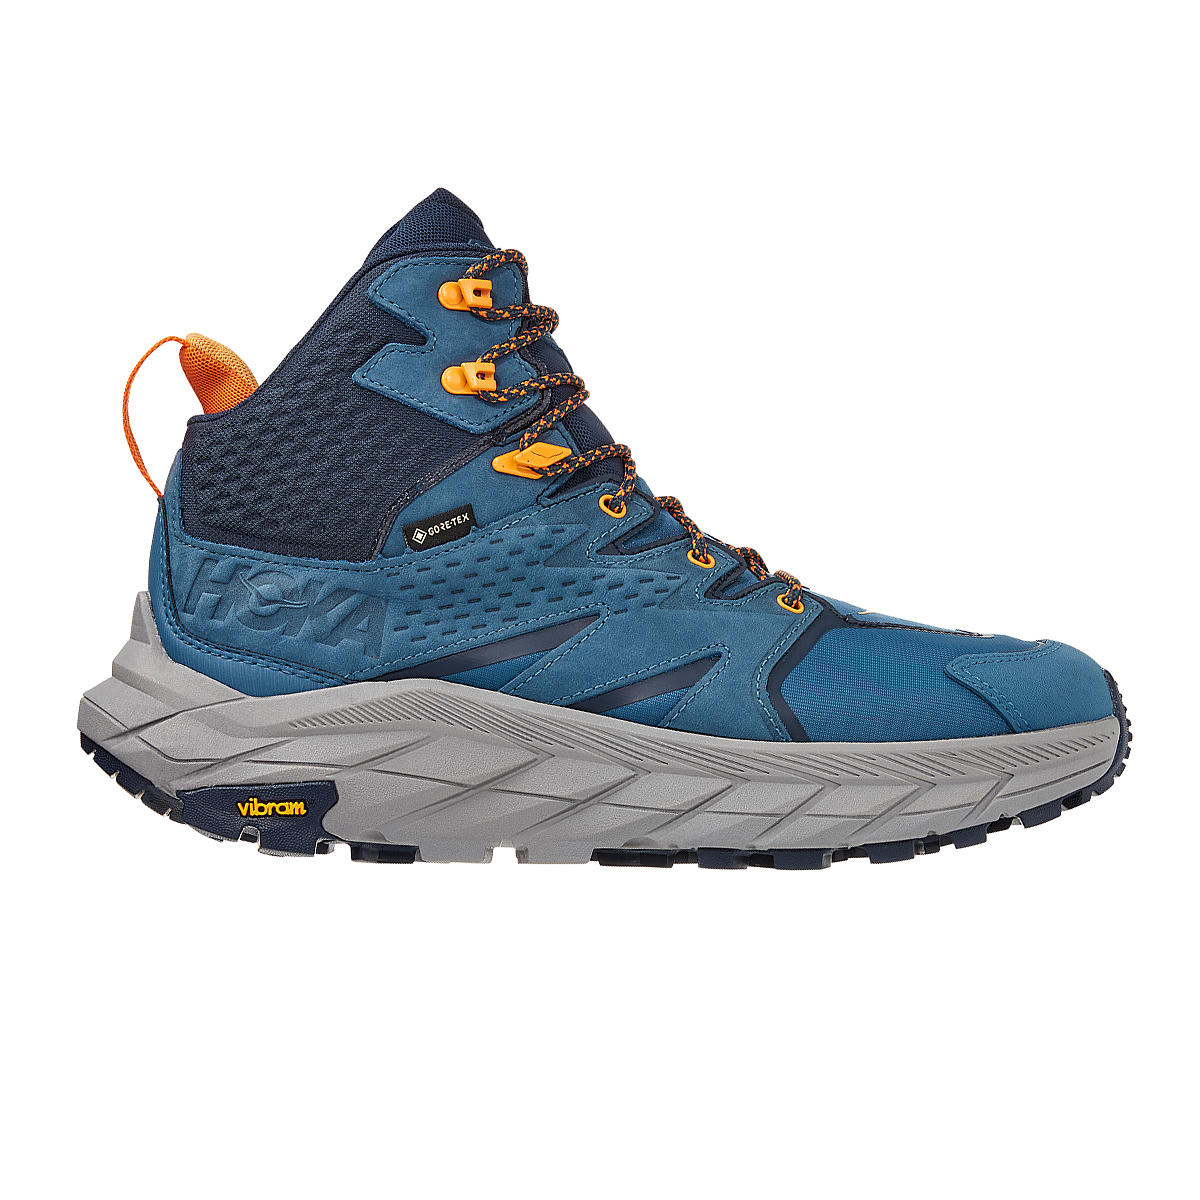 Men's Hoka One One Anacapa Mid Gore-Tex Trail Running Shoe - Color: Real Teal/Outer Space - Size: 7 - Width: Regular, Real Teal/Outer Space, large, image 1